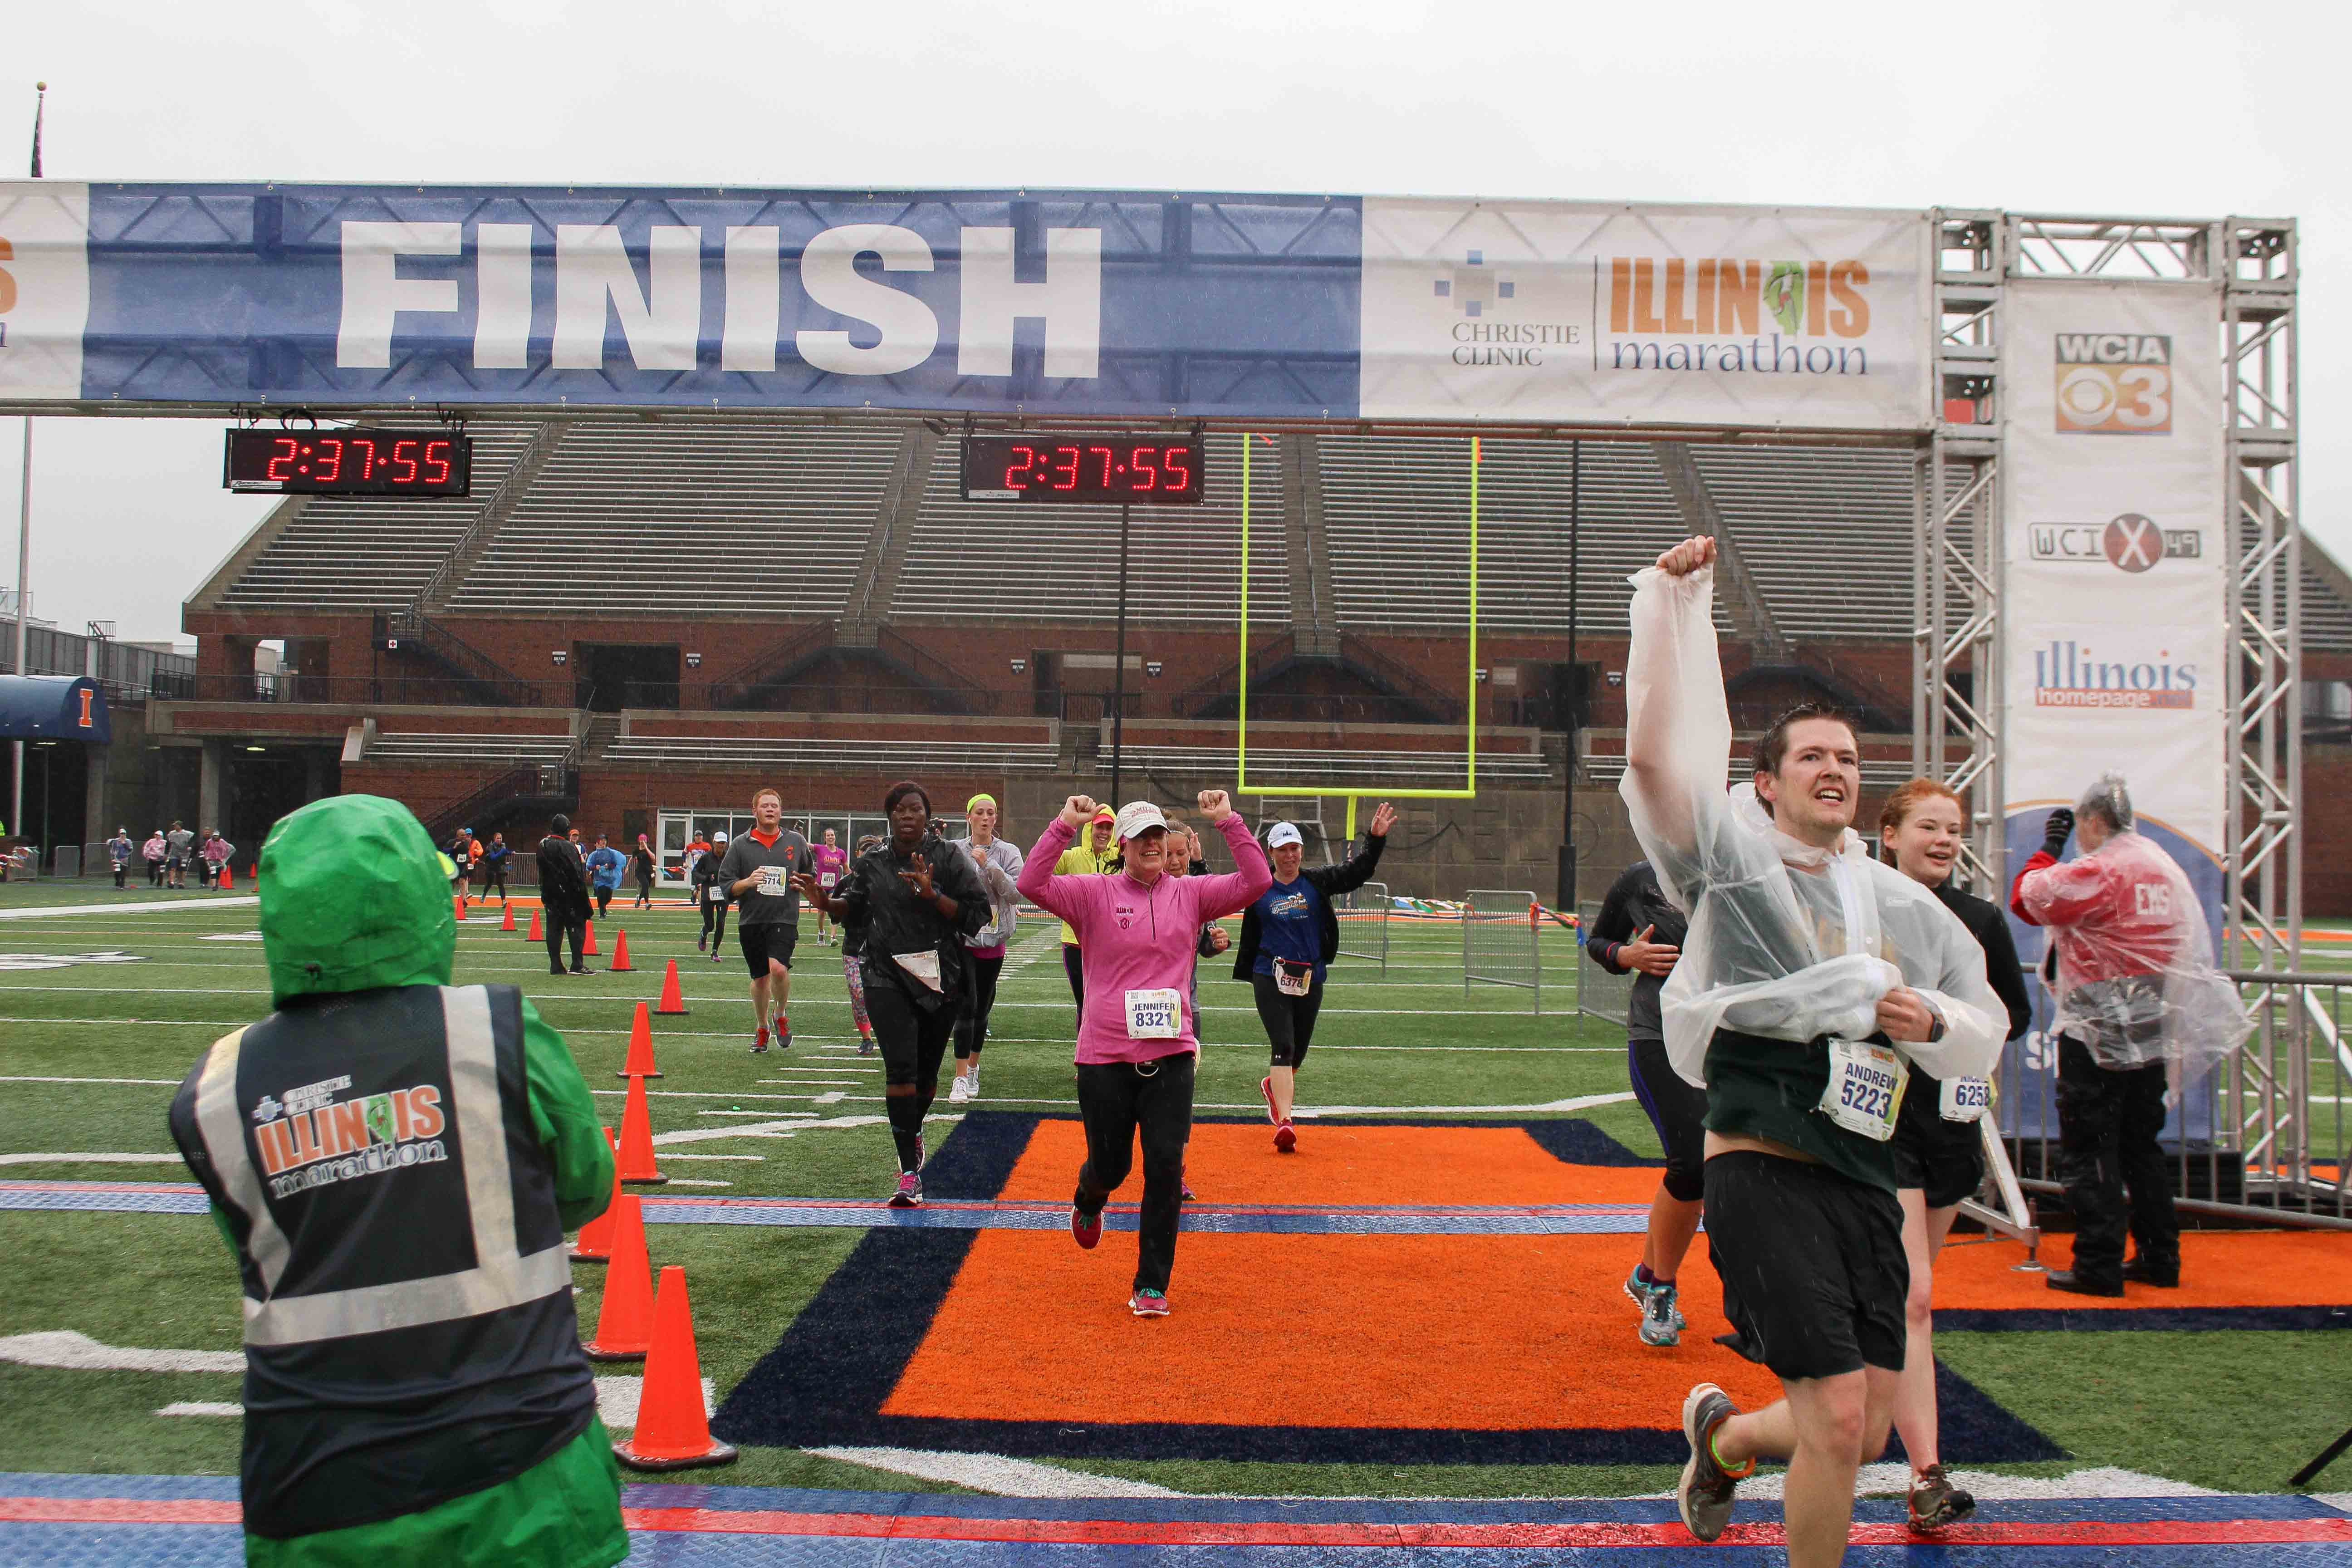 Runners cross the finish line in the Christie Clinic Illinois Marathon at Memorial Stadium in April 2016. The annual Illinois Marathon will take place this weekend.